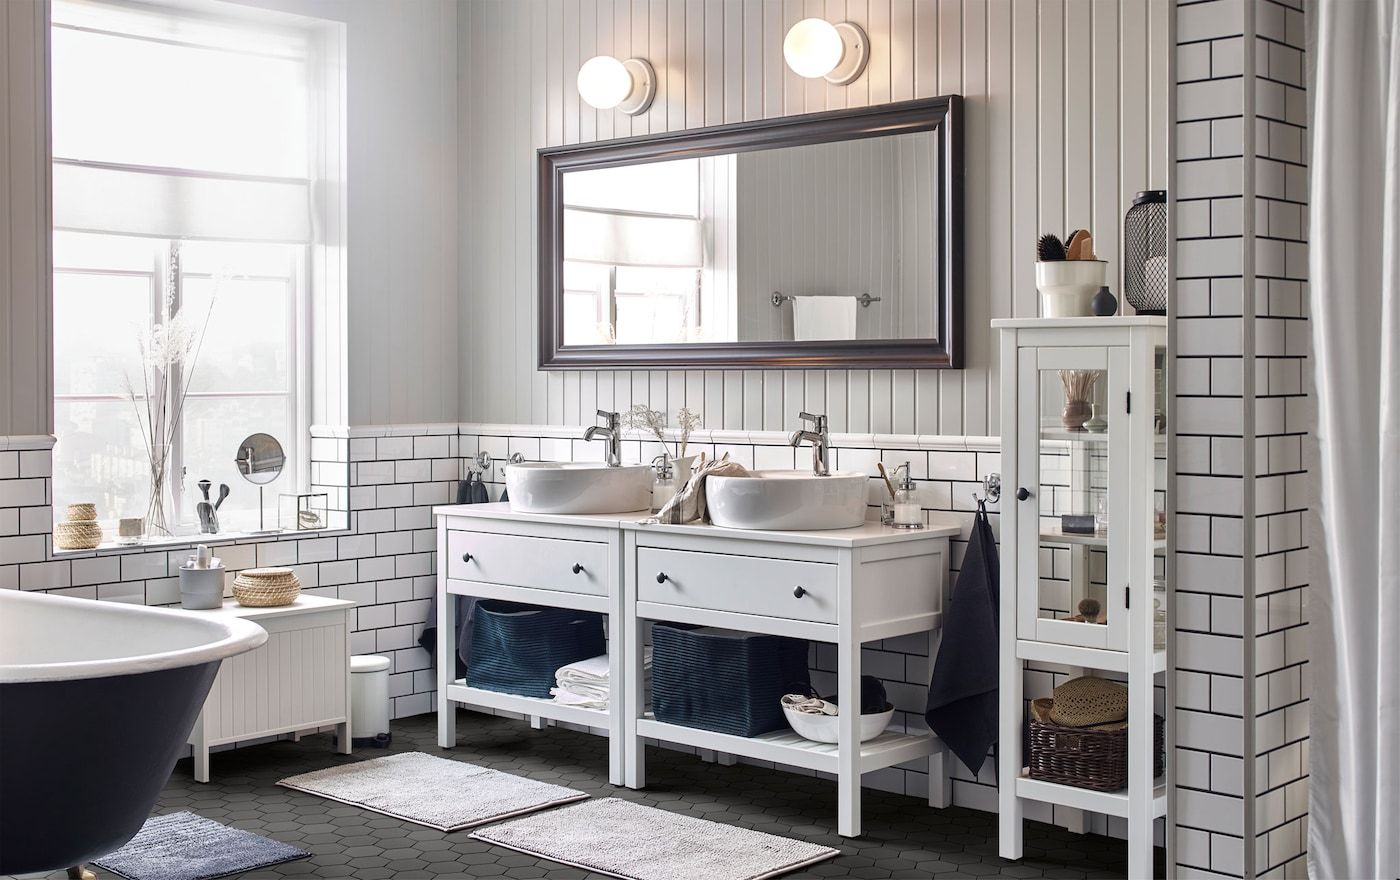 Recharge In A Relaxing Bathroom For Two Relaxing Bathroom Bathroom Vanity Bathroom Furniture